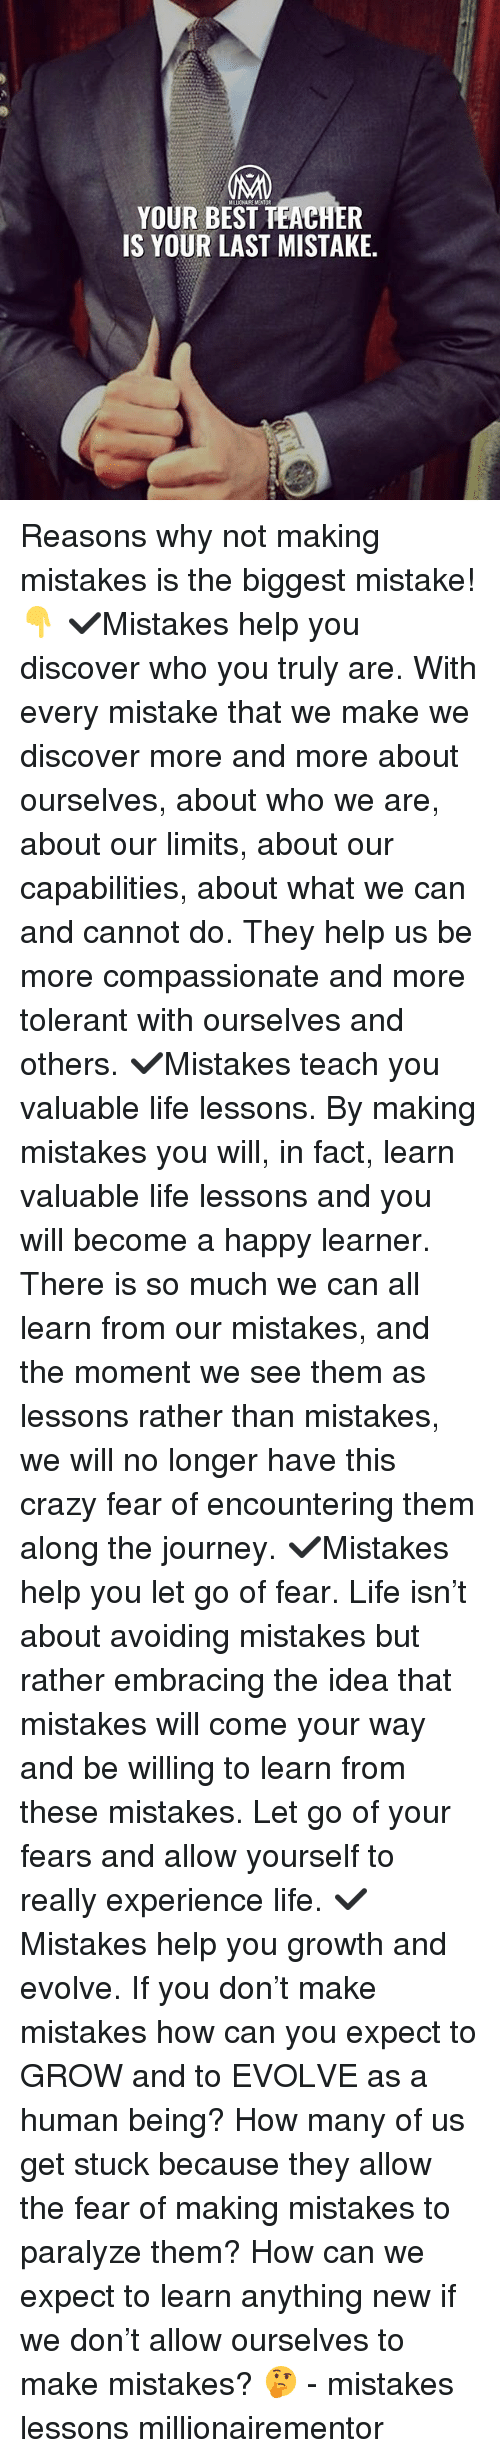 Best Teacher: MILLONAIRE MENTOR  YOUR BEST TEACHER  IS YOUR LAST MISTAKE. Reasons why not making mistakes is the biggest mistake!👇 ✔️Mistakes help you discover who you truly are. With every mistake that we make we discover more and more about ourselves, about who we are, about our limits, about our capabilities, about what we can and cannot do. They help us be more compassionate and more tolerant with ourselves and others. ✔️Mistakes teach you valuable life lessons. By making mistakes you will, in fact, learn valuable life lessons and you will become a happy learner. There is so much we can all learn from our mistakes, and the moment we see them as lessons rather than mistakes, we will no longer have this crazy fear of encountering them along the journey. ✔️Mistakes help you let go of fear. Life isn't about avoiding mistakes but rather embracing the idea that mistakes will come your way and be willing to learn from these mistakes. Let go of your fears and allow yourself to really experience life. ✔️Mistakes help you growth and evolve. If you don't make mistakes how can you expect to GROW and to EVOLVE as a human being? How many of us get stuck because they allow the fear of making mistakes to paralyze them? How can we expect to learn anything new if we don't allow ourselves to make mistakes? 🤔 - mistakes lessons millionairementor